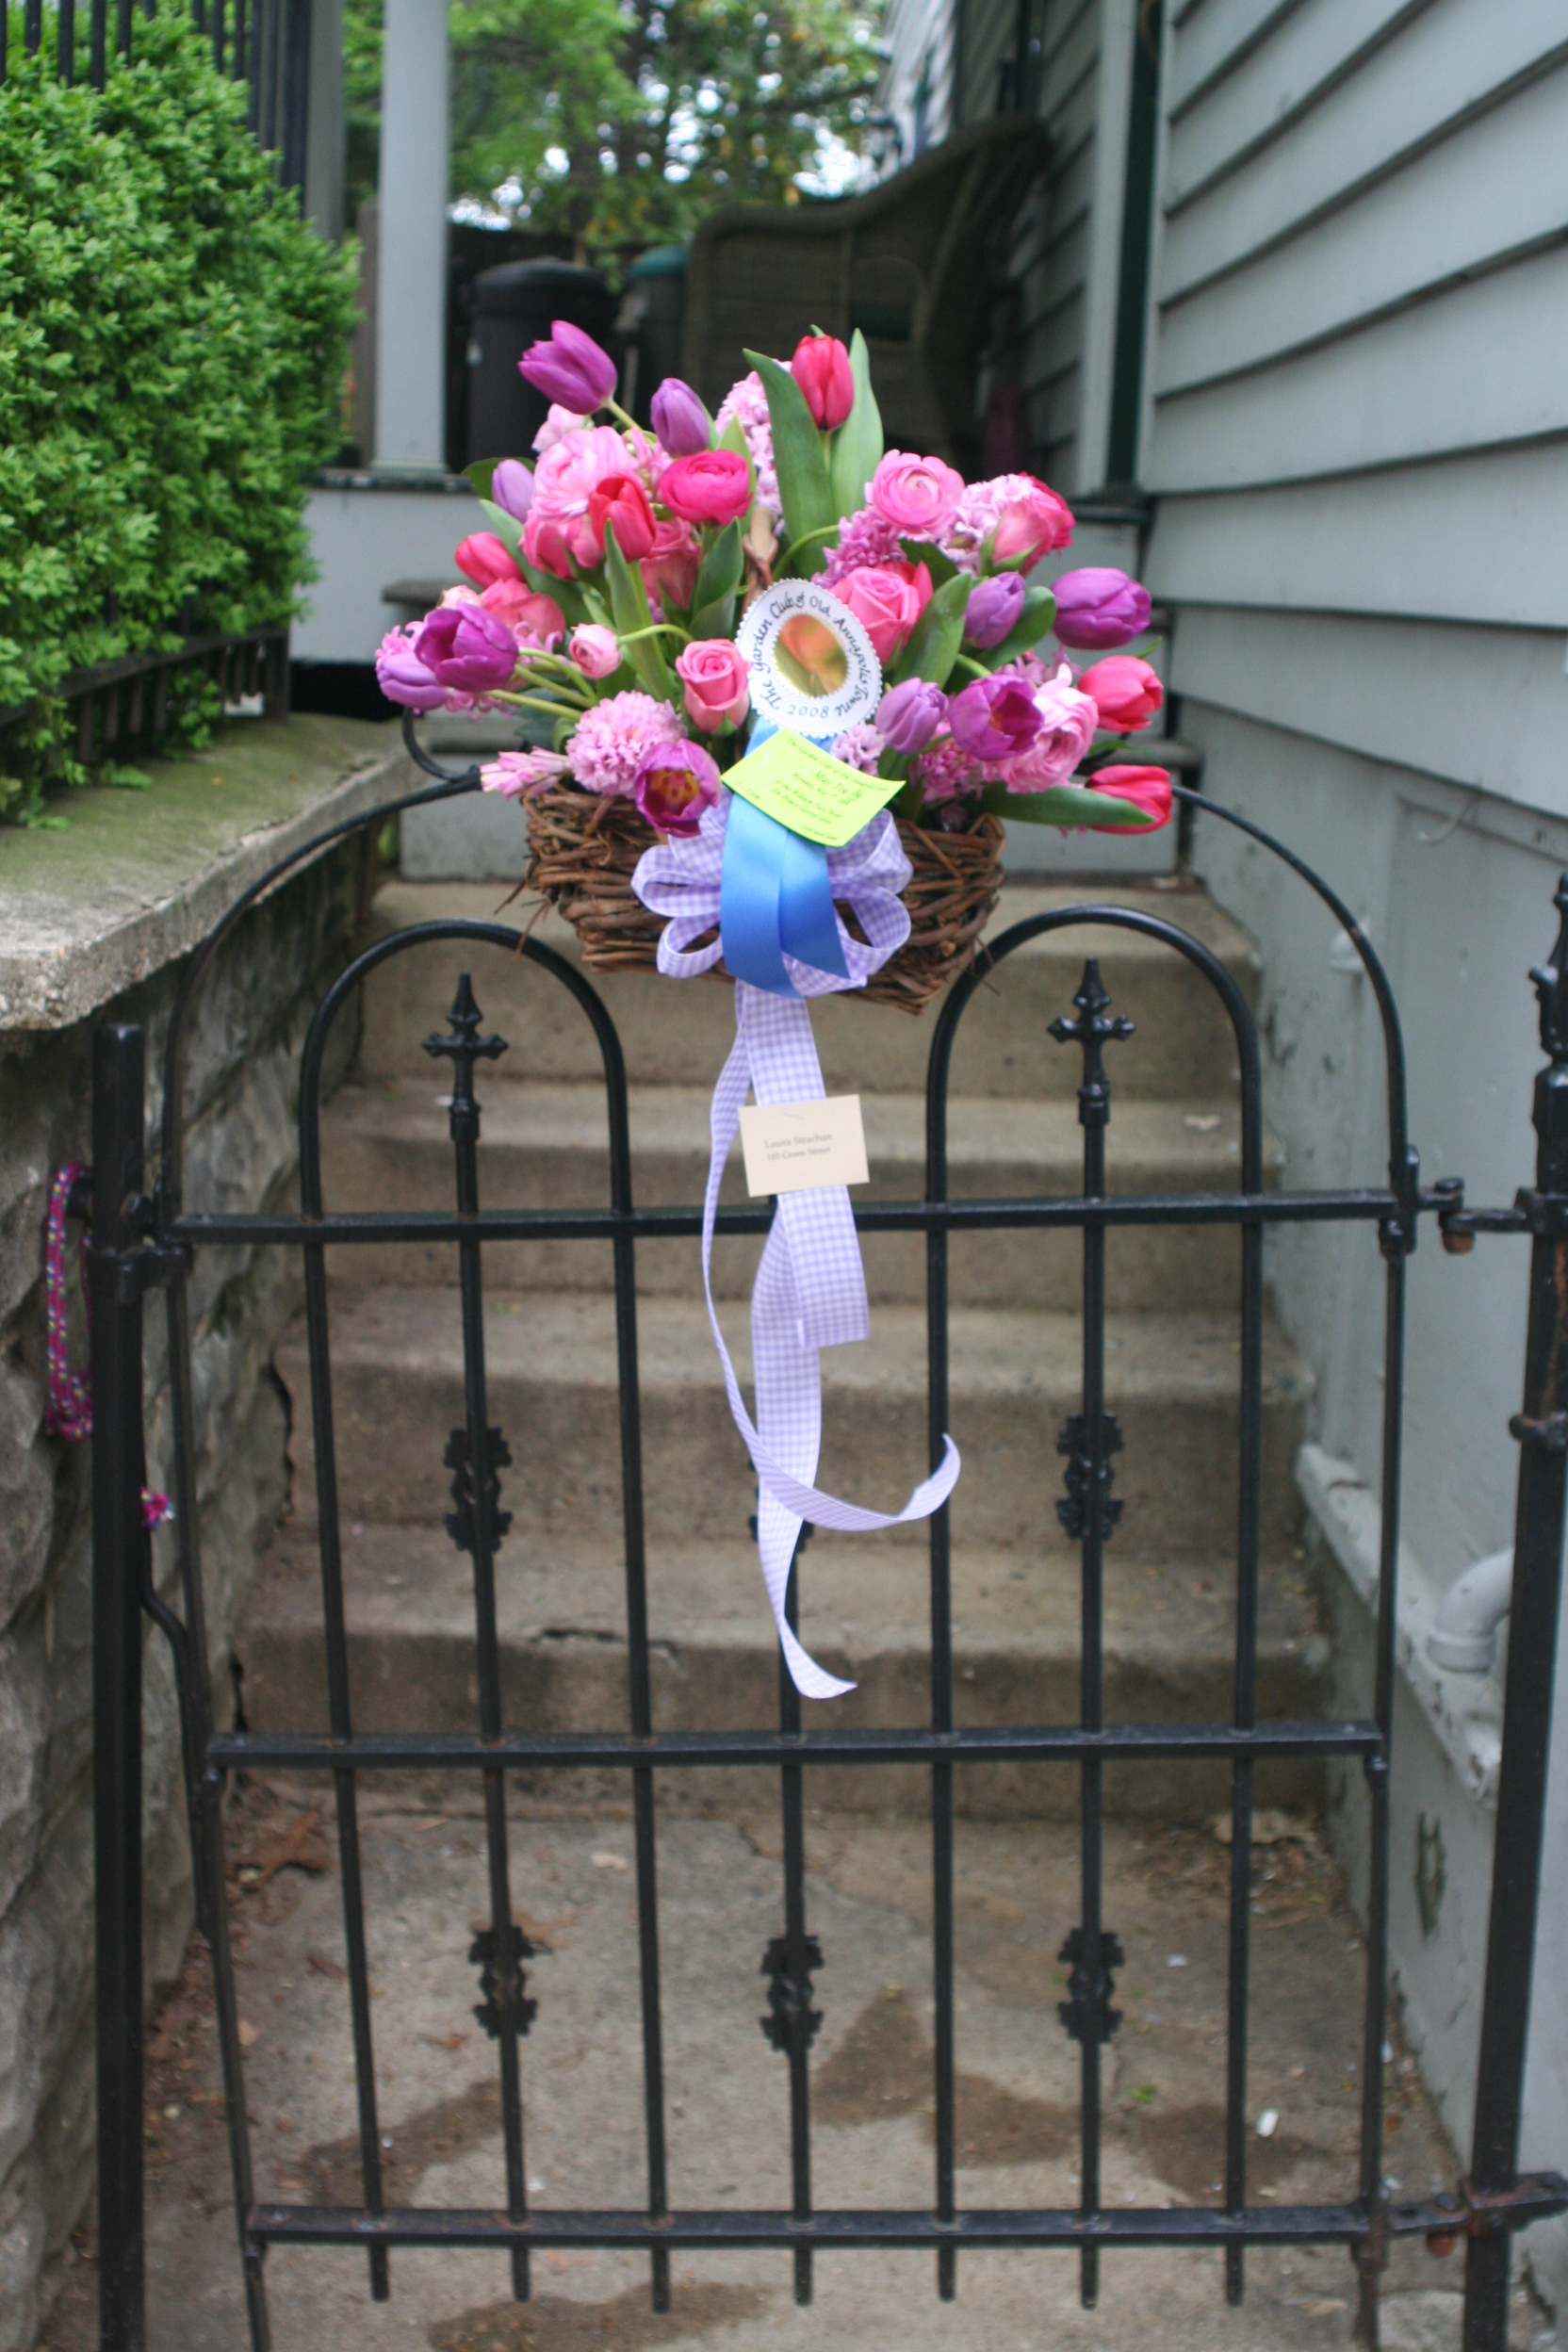 A beautiful May basket graces a wrought iron gate in downtown Annapolis